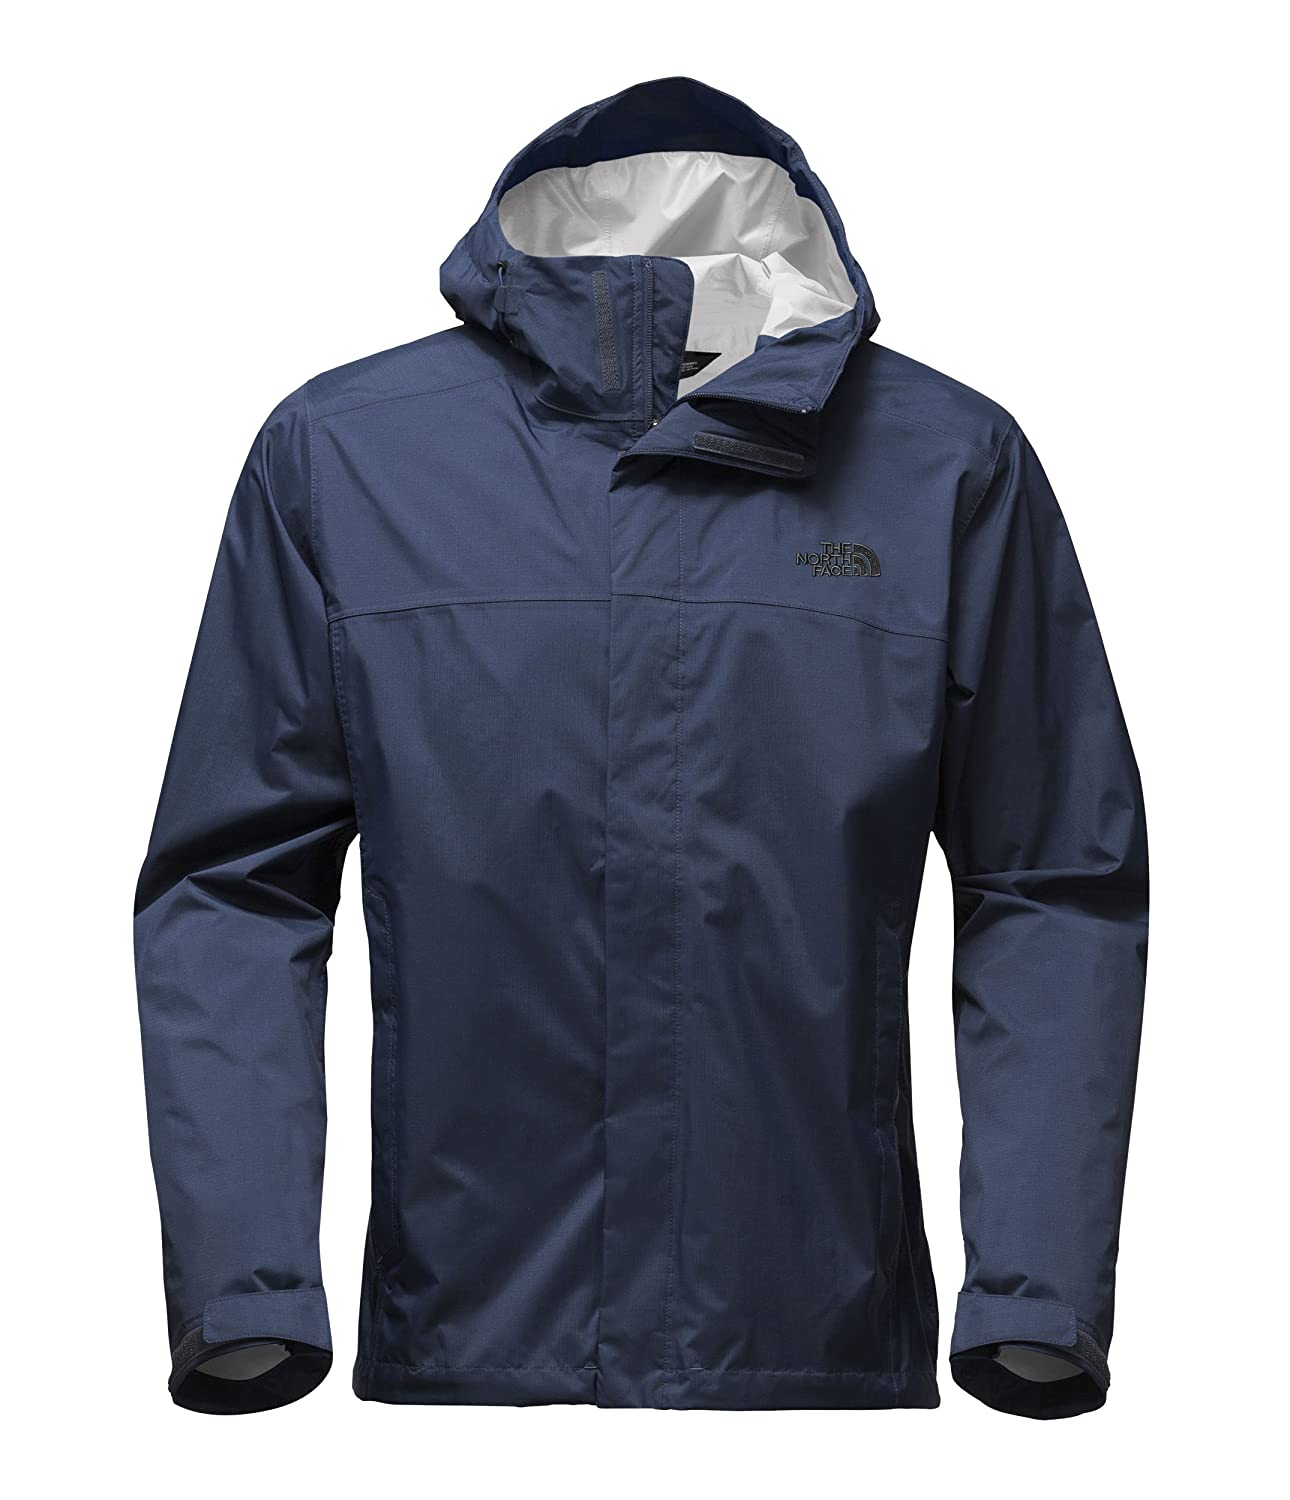 The North Face OUTERWEAR メンズ B01HQS9TNW 2X-Large|Shady Blue/Shady Blue Shady Blue/Shady Blue 2X-Large